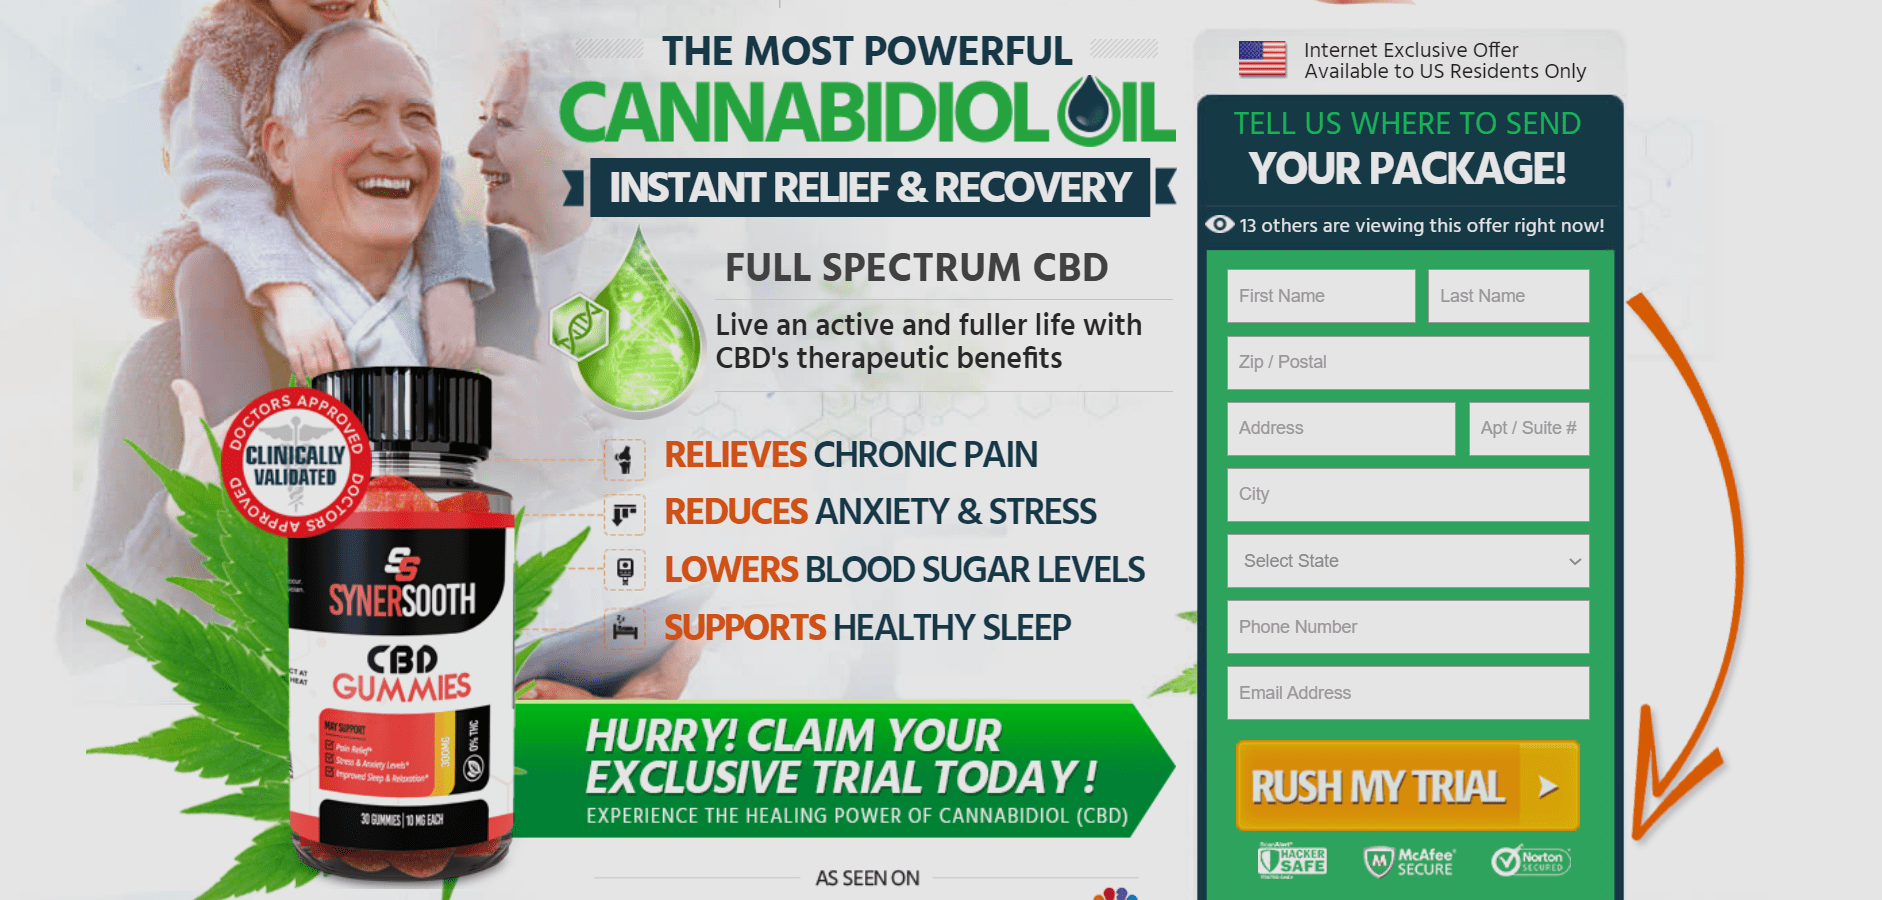 SynerSooth CBD Gummies Reviews - Does it Really Work?